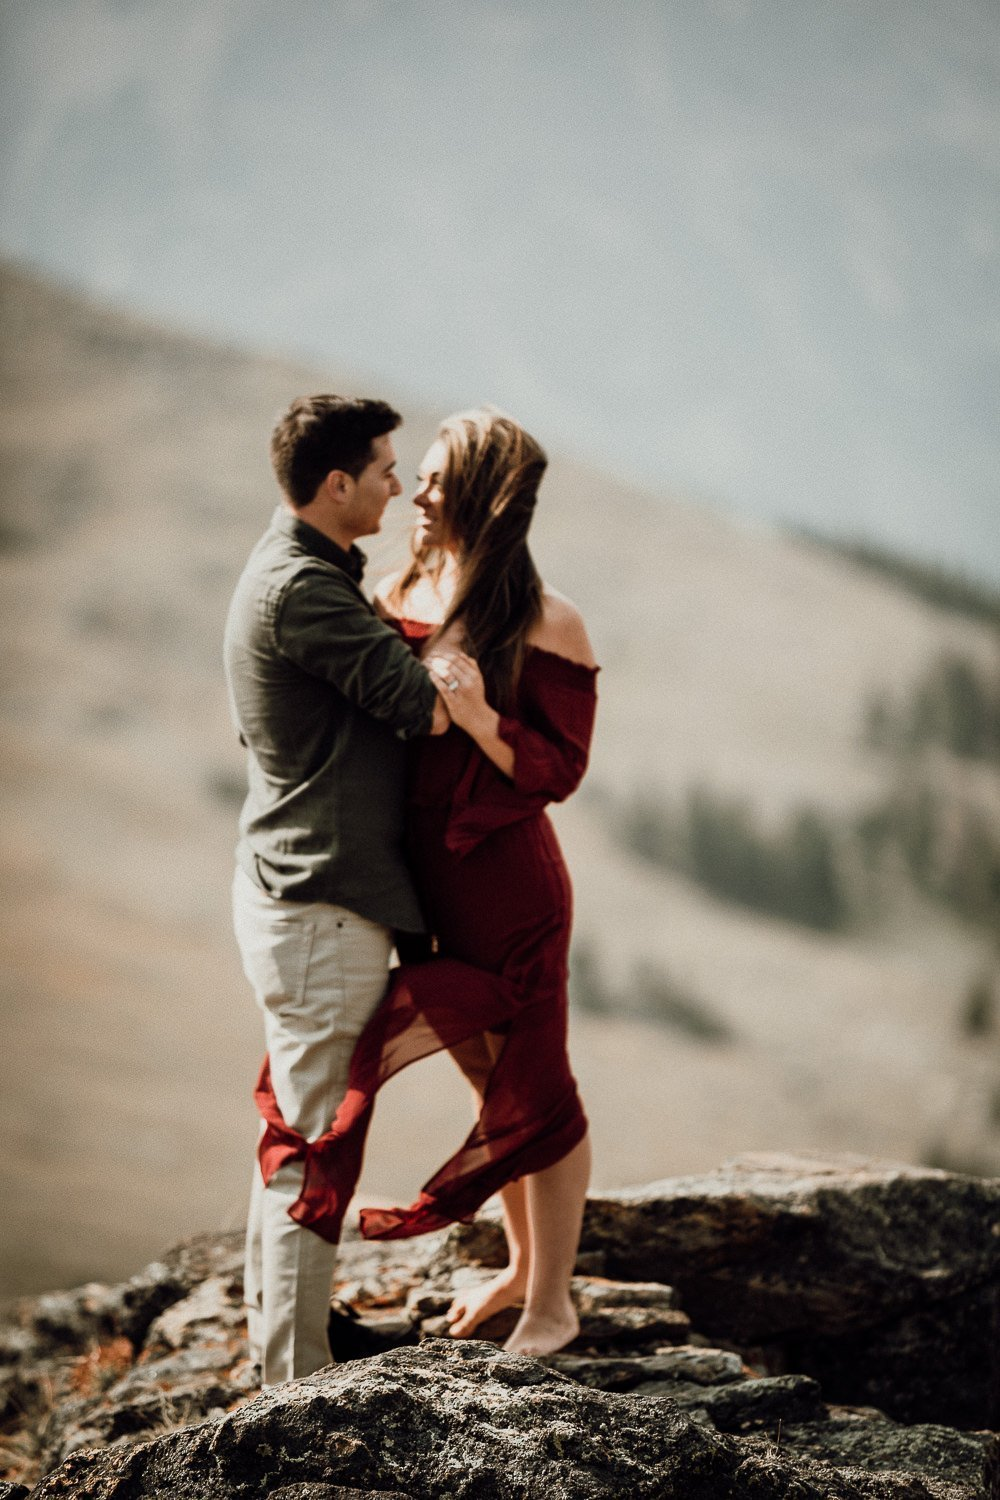 ROCKY MOUNTAIN NATIONAL PARK ADVENTURE|CHELSIE + SHAUN|ADVENTURE ELOPEMENTS|INTIMATE WEDDINGS|SELF -SOLEMNIZING ELOPEMENT PHOTOGRAPHER ADVENTURE WEDDING PHOTOGRAPHER  |ROCKY MOUNTAIN NATIONAL PARK HIKING ELOPEMENTS I ADVENTURE DESTINATION ELOPEMENT PHOTOGRAPHER I COLORADO INTIMATE WEDDINGS & ADVENTUROUS ELOPEMENT PHOTOGRAPHER I JUSTYNA E BUTLER |ROCKY MOUNTAIN NATIONAL PARK WEDDING PHOTOGRAPHER I ADVENTURE WEDDING PHOTOGRAPHER I ROCKY MOUNTAIN WEDDINGS PHOTOGRAPHY|ROCKY MOUNTAIN ELOPEMENTS PHOTOGRAPHY|JUSTYNA E BUTLER PHOTOGRAPHY |COLORADO MOUNTAIN INTIMATE WEDDINGS PHOTOGRAPHER I CHELSIE +SHAUN